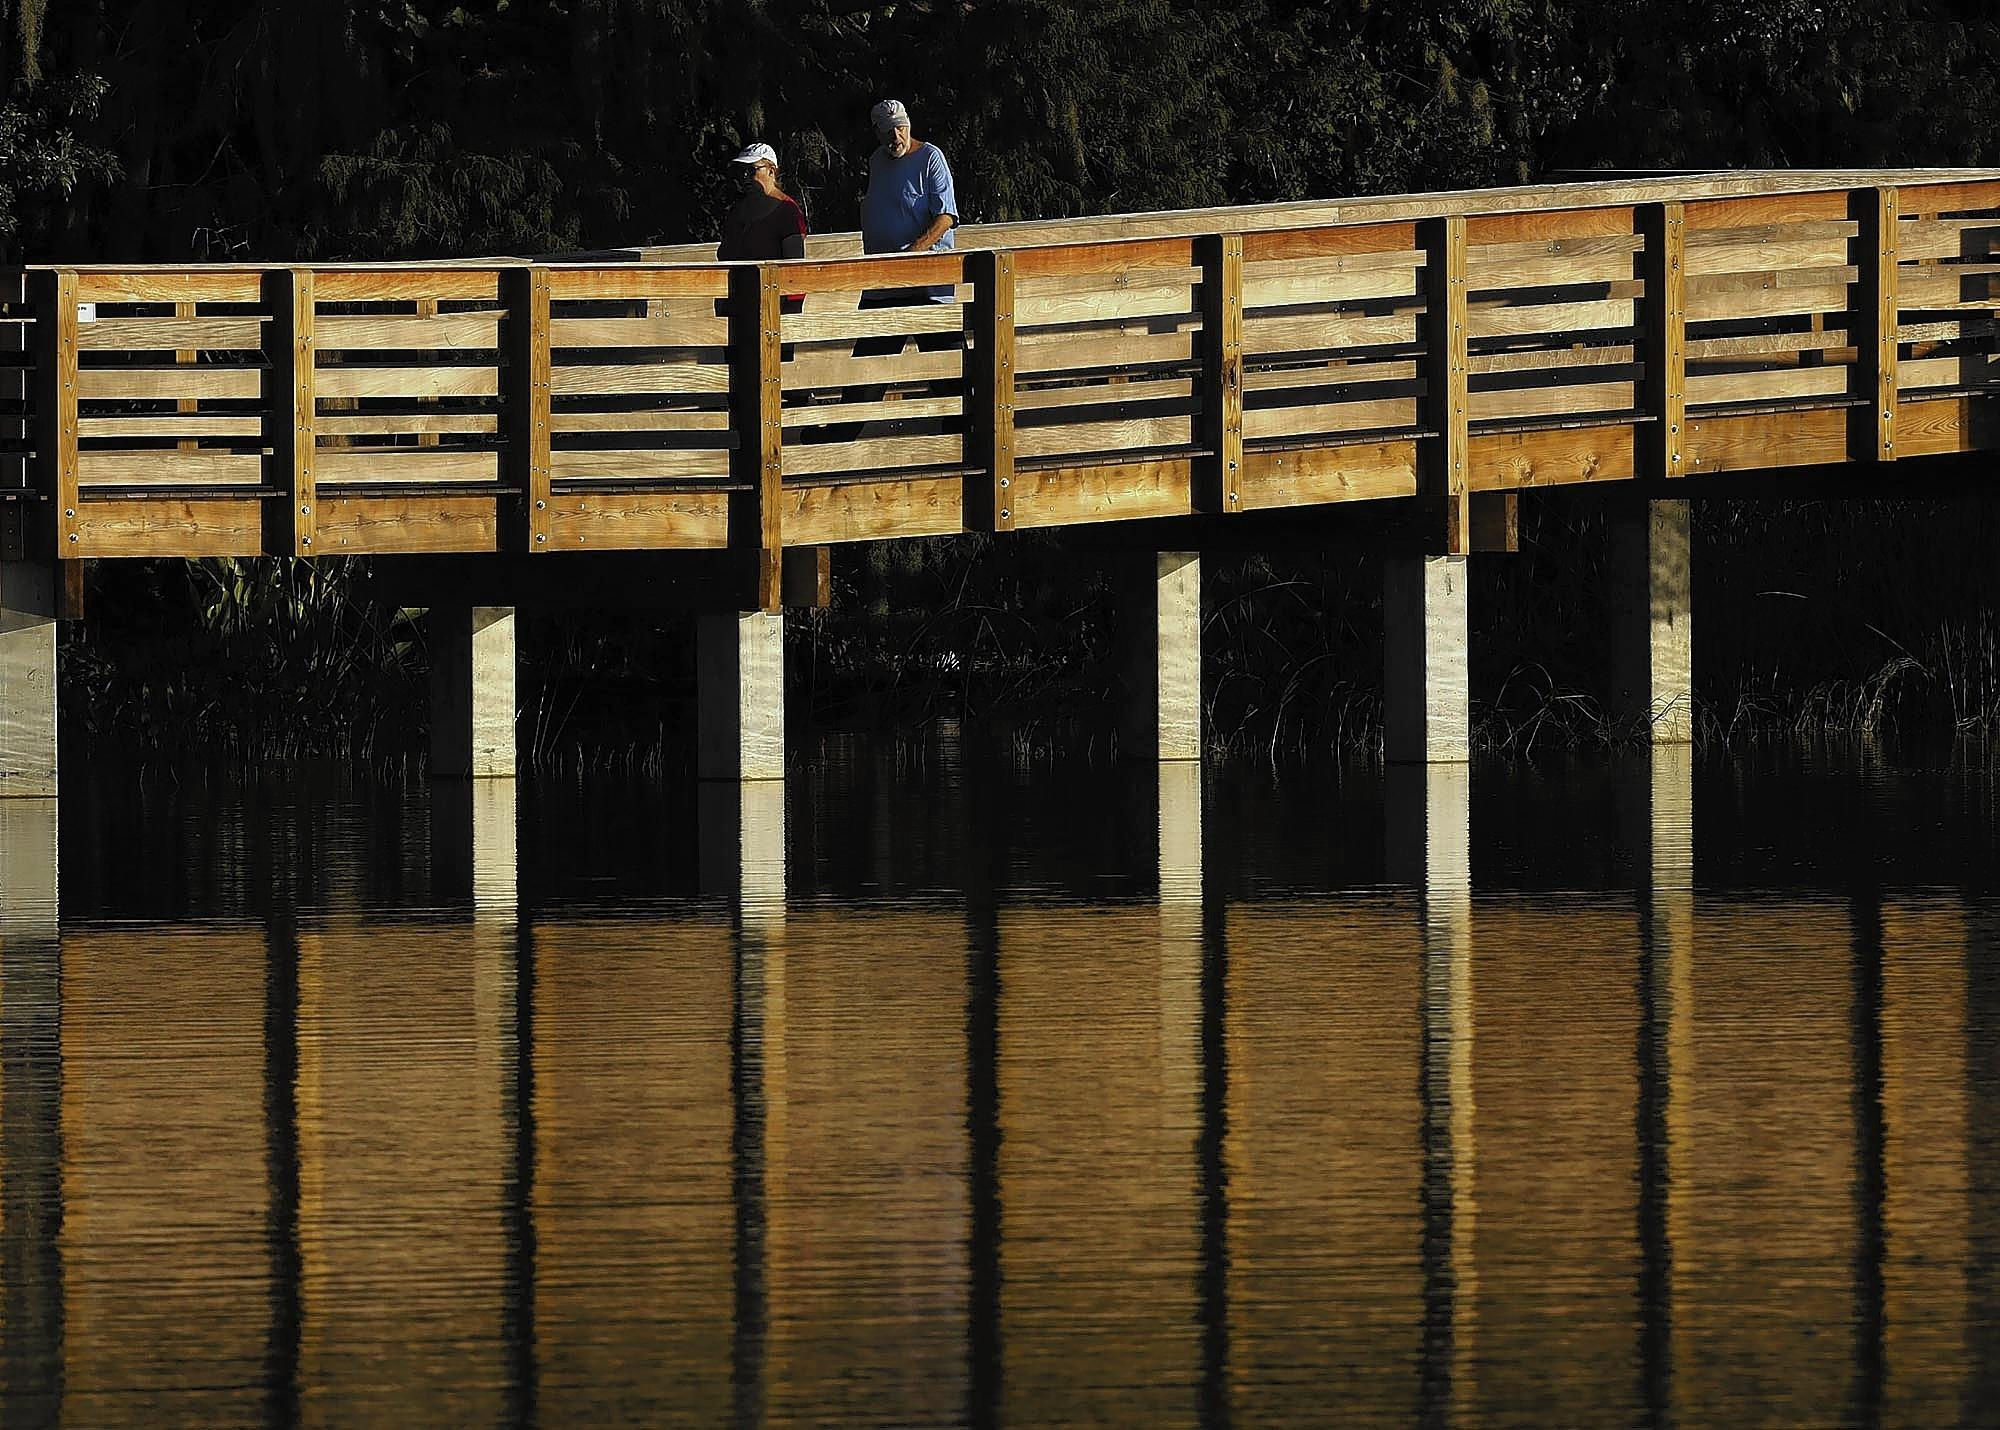 Walkers enjoy the newly rebuilt boardwalk at Lake Dora in Mount Dora on Wednesday, October 2, 2013. (Stephen M. Dowell/Orlando Sentinel)